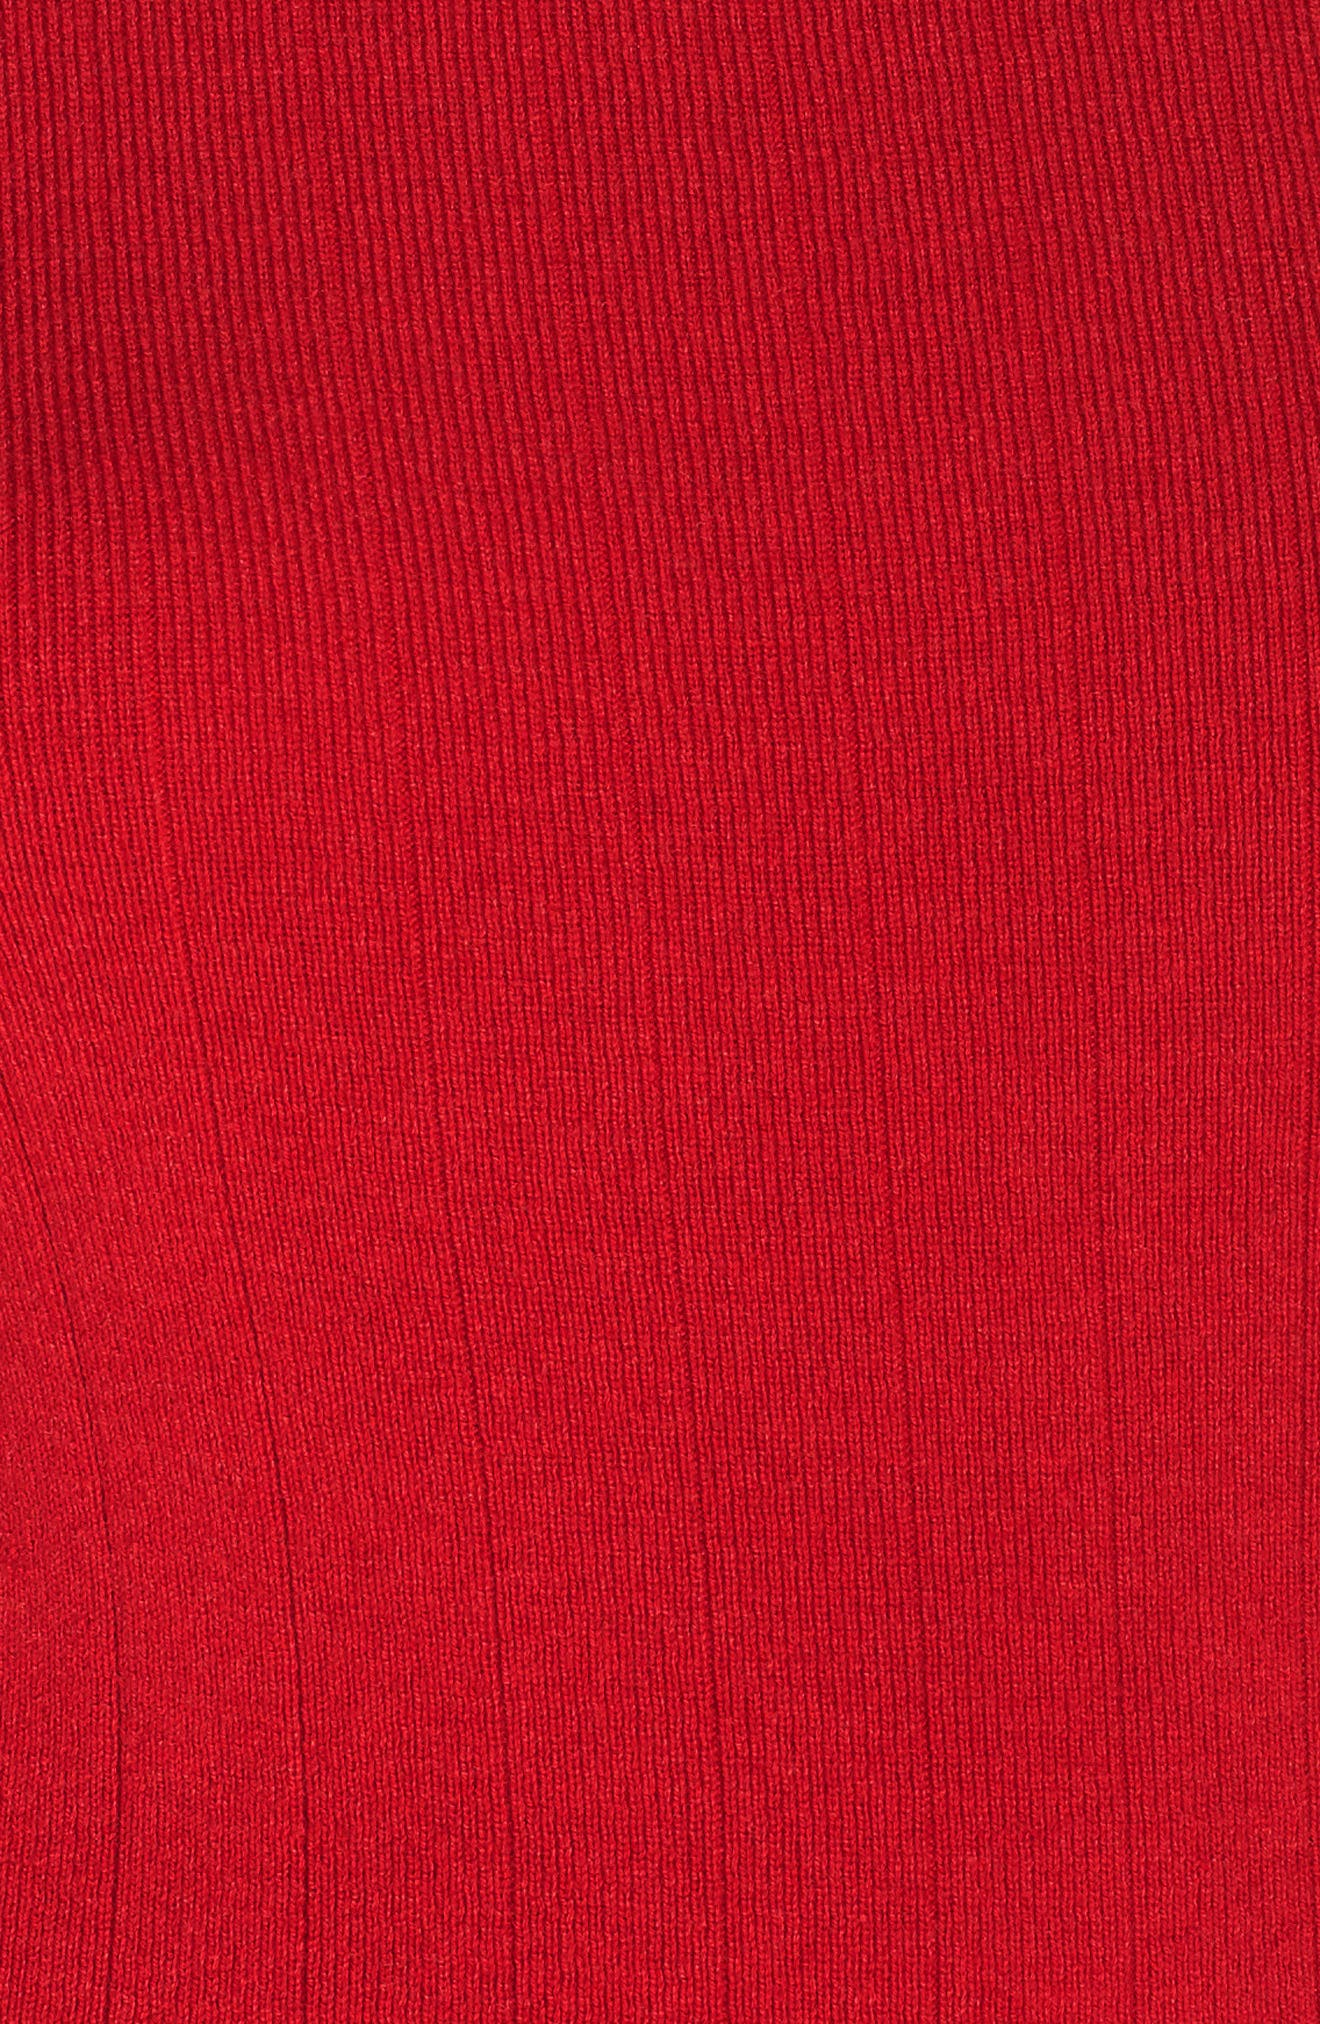 Variegated Rib Sweater,                             Alternate thumbnail 11, color,                             RED CHILI